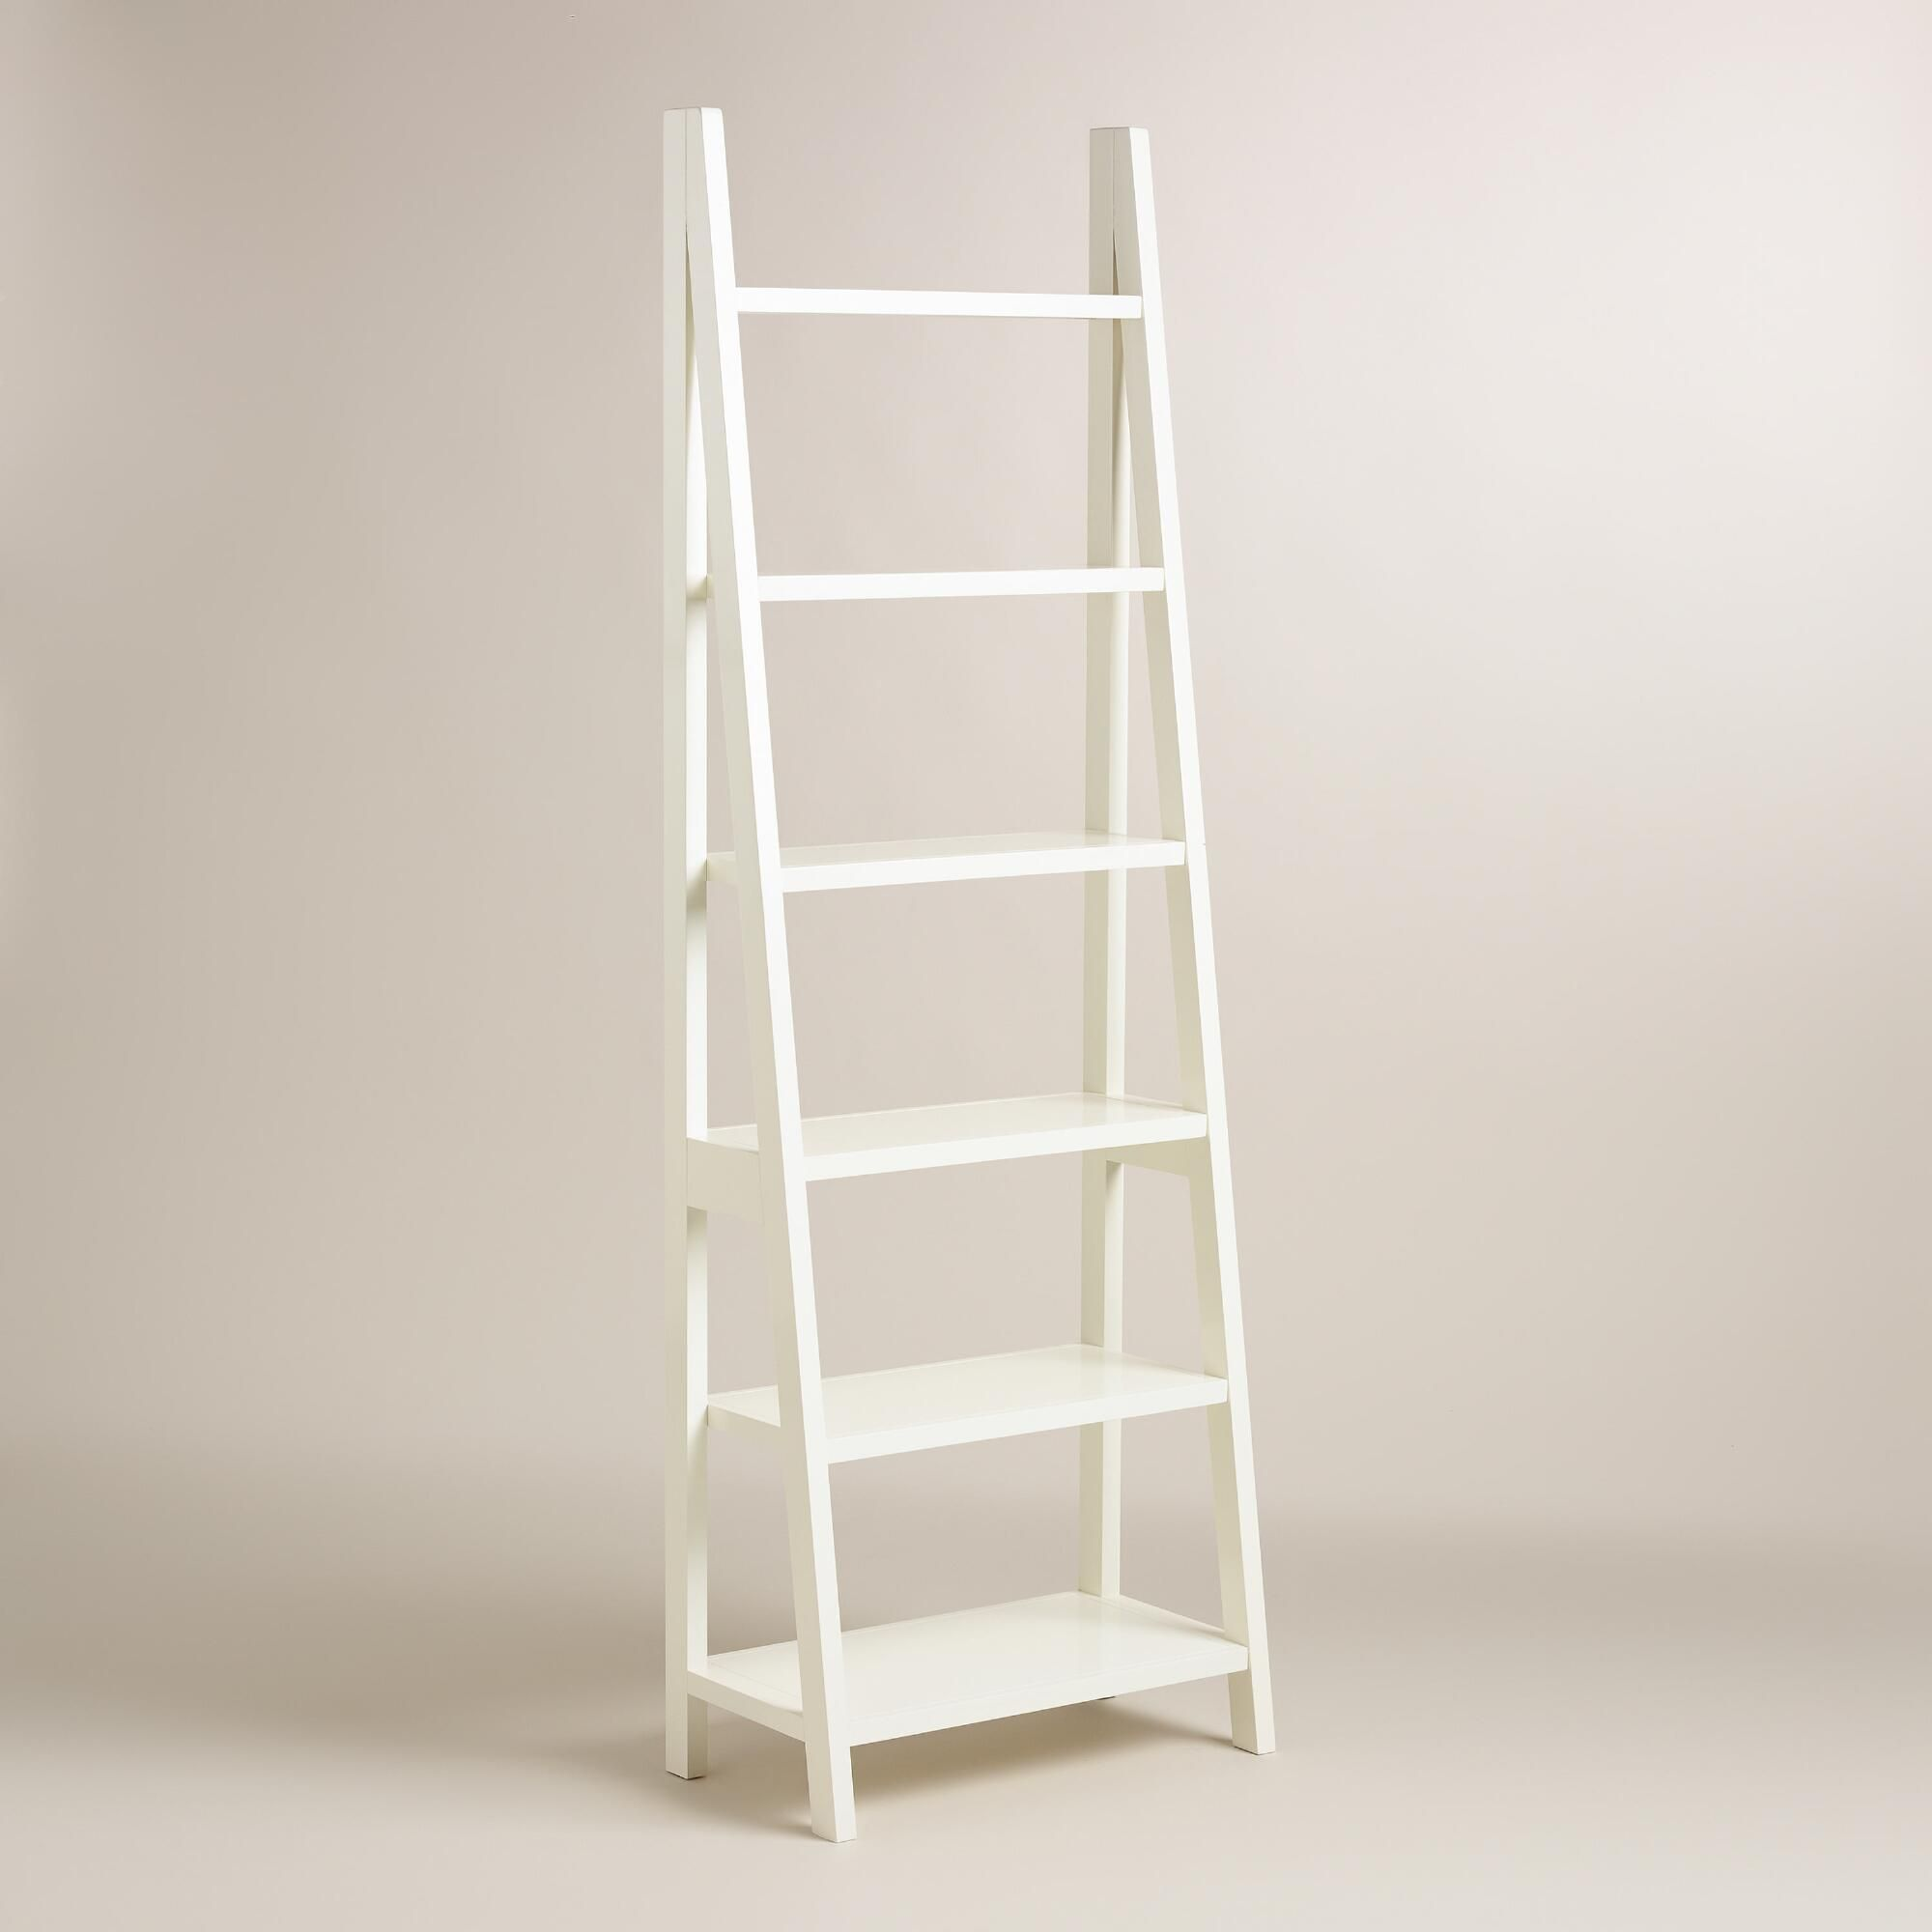 Our leaning bookshelf is a space-saving storage solution that's ideal for  compact areas.